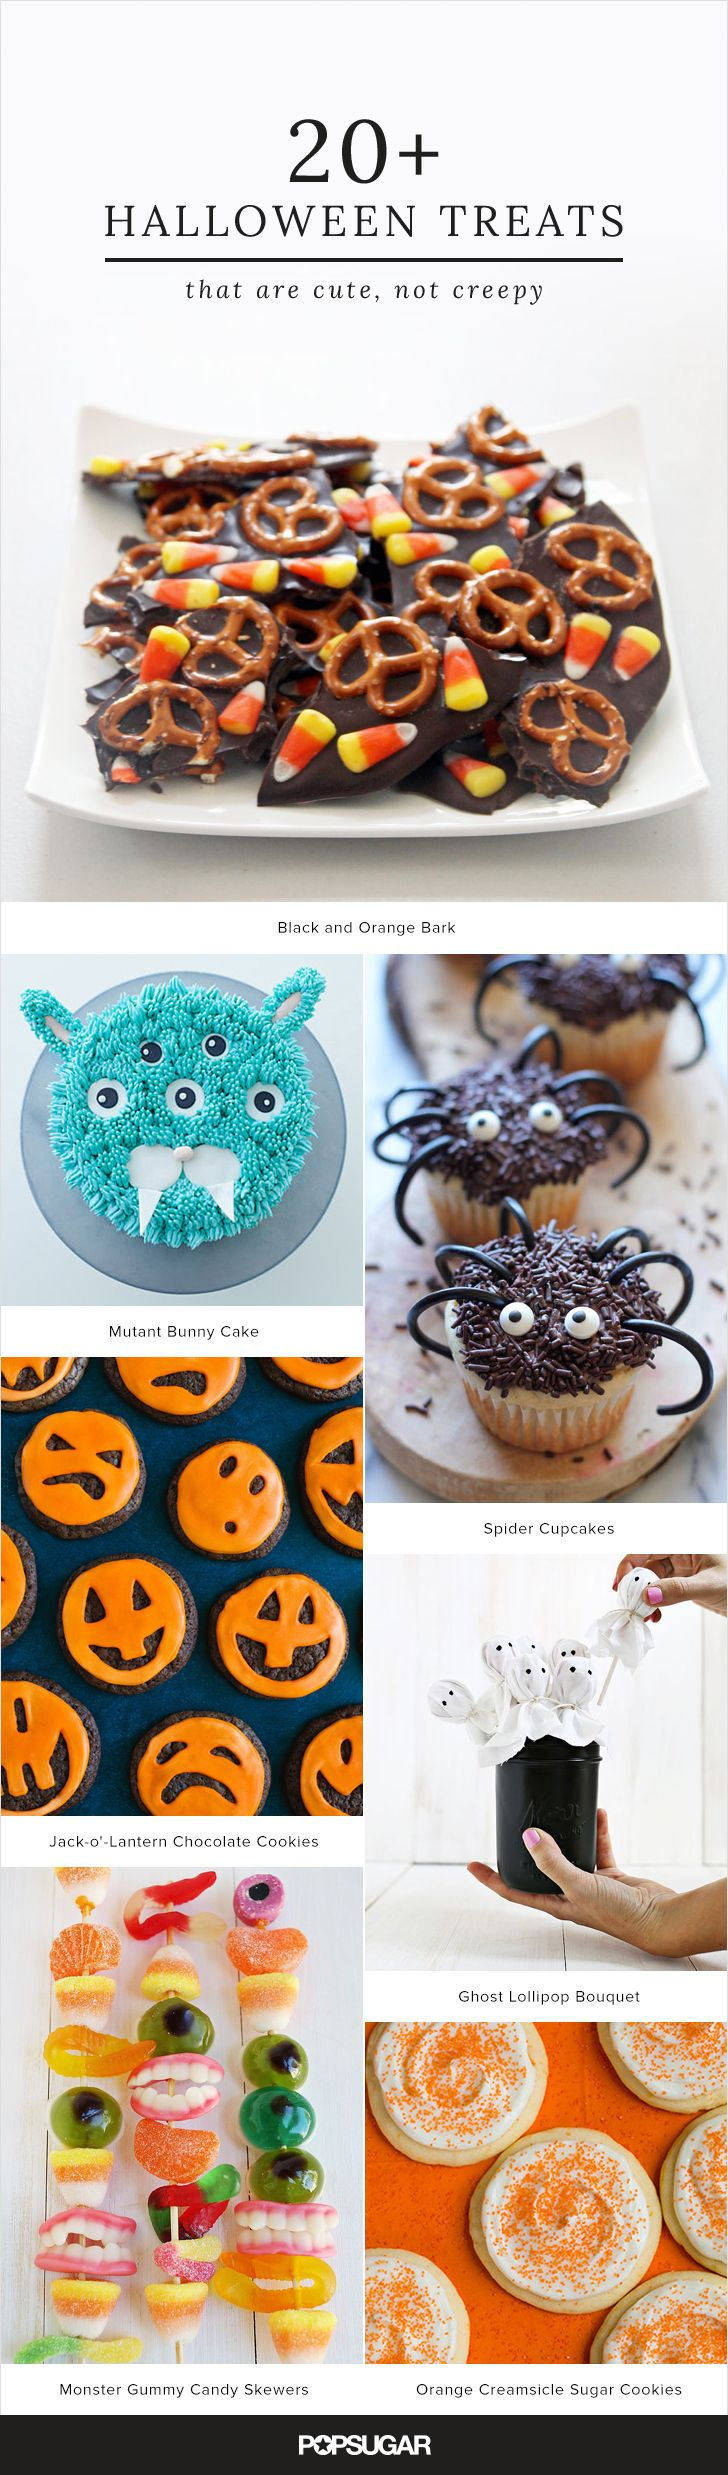 Whether you're hosting a Halloween party, sharing treats with your officemates, or looking for a fun Fall activity, you'll want to remember at least a few of these cute (not creepy) recipes. The treats range from ghost marshmallow treats to jack-o'-lantern cake pops and are sure to captivate your imagination.